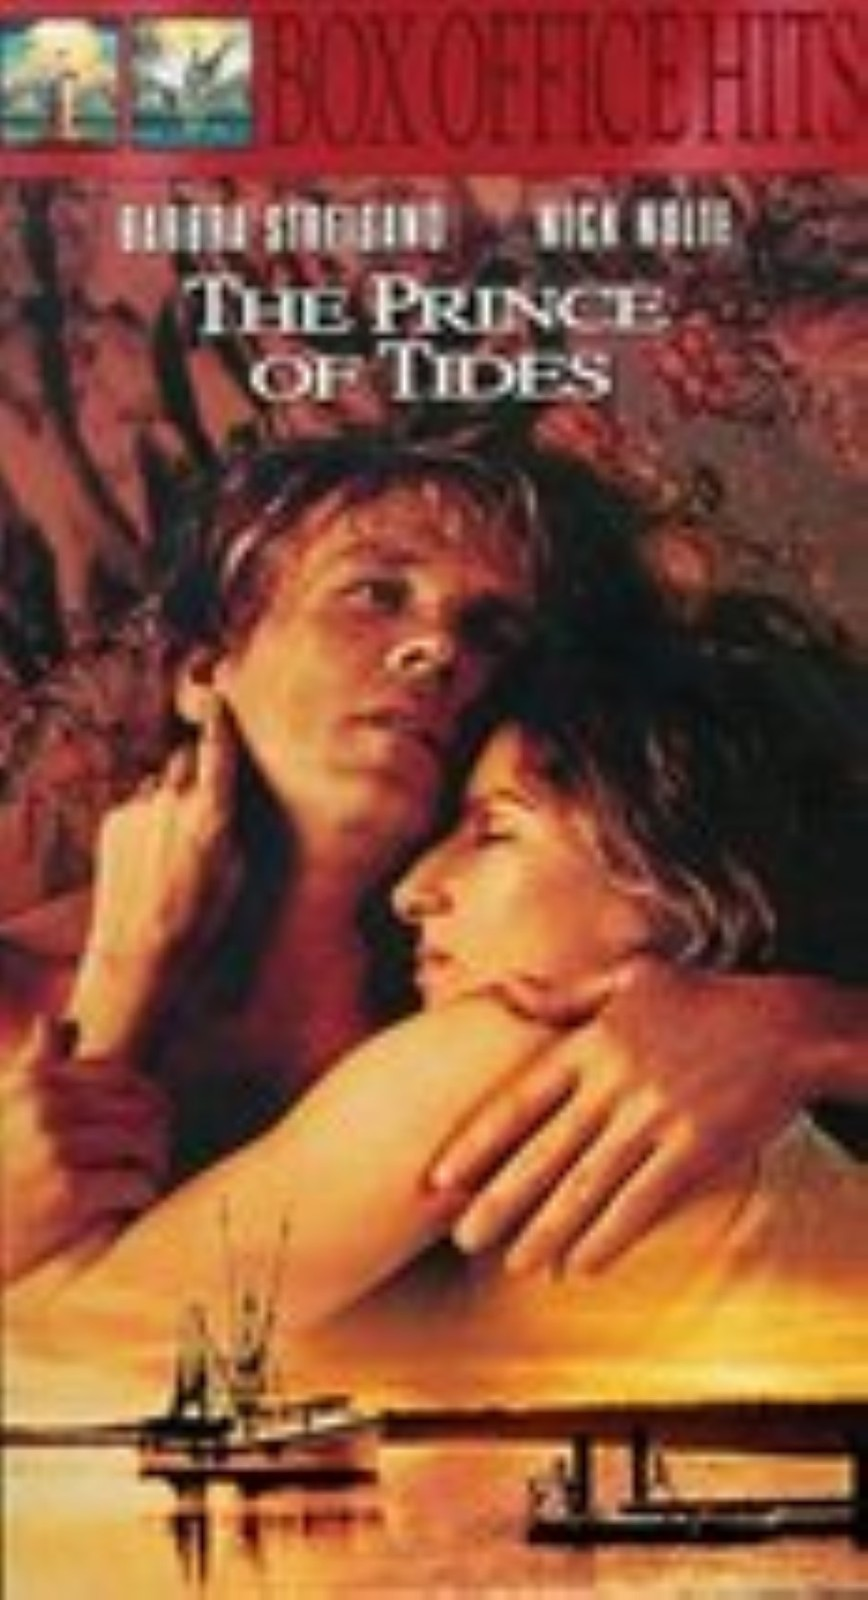 The Prince of Tides Vhs